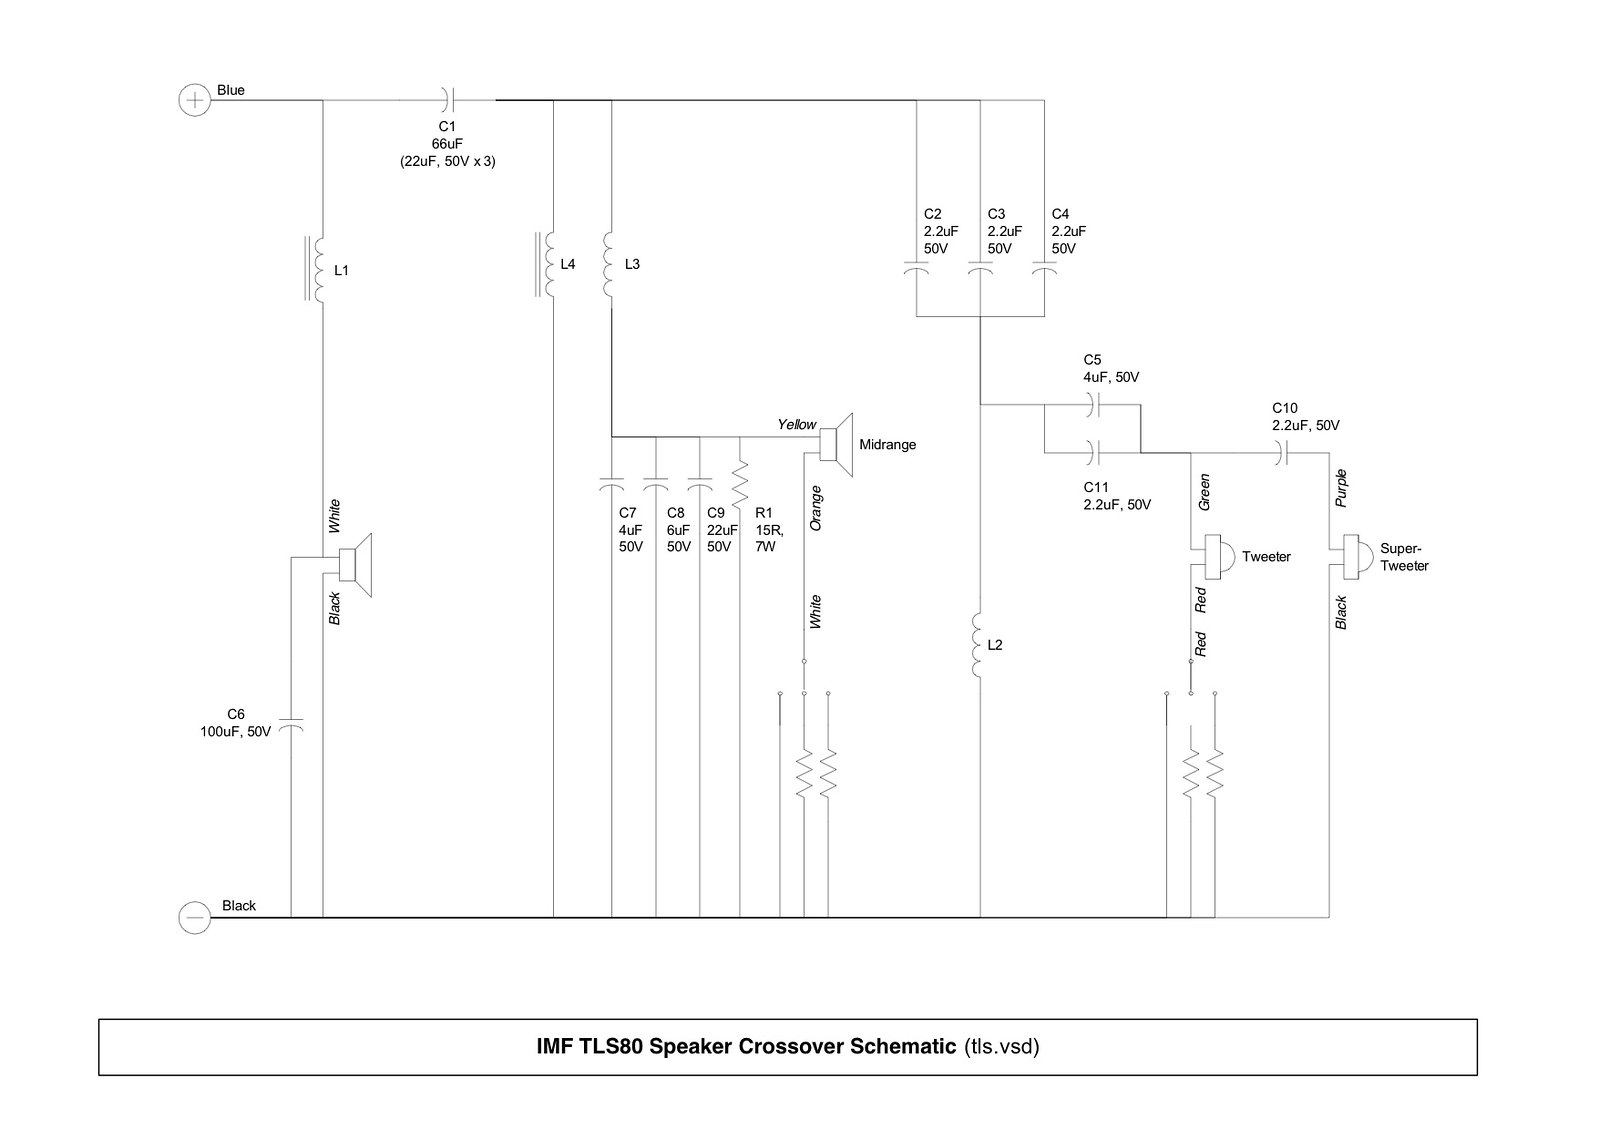 imf speaker technical details crossover schematics rebuild imf tls 80